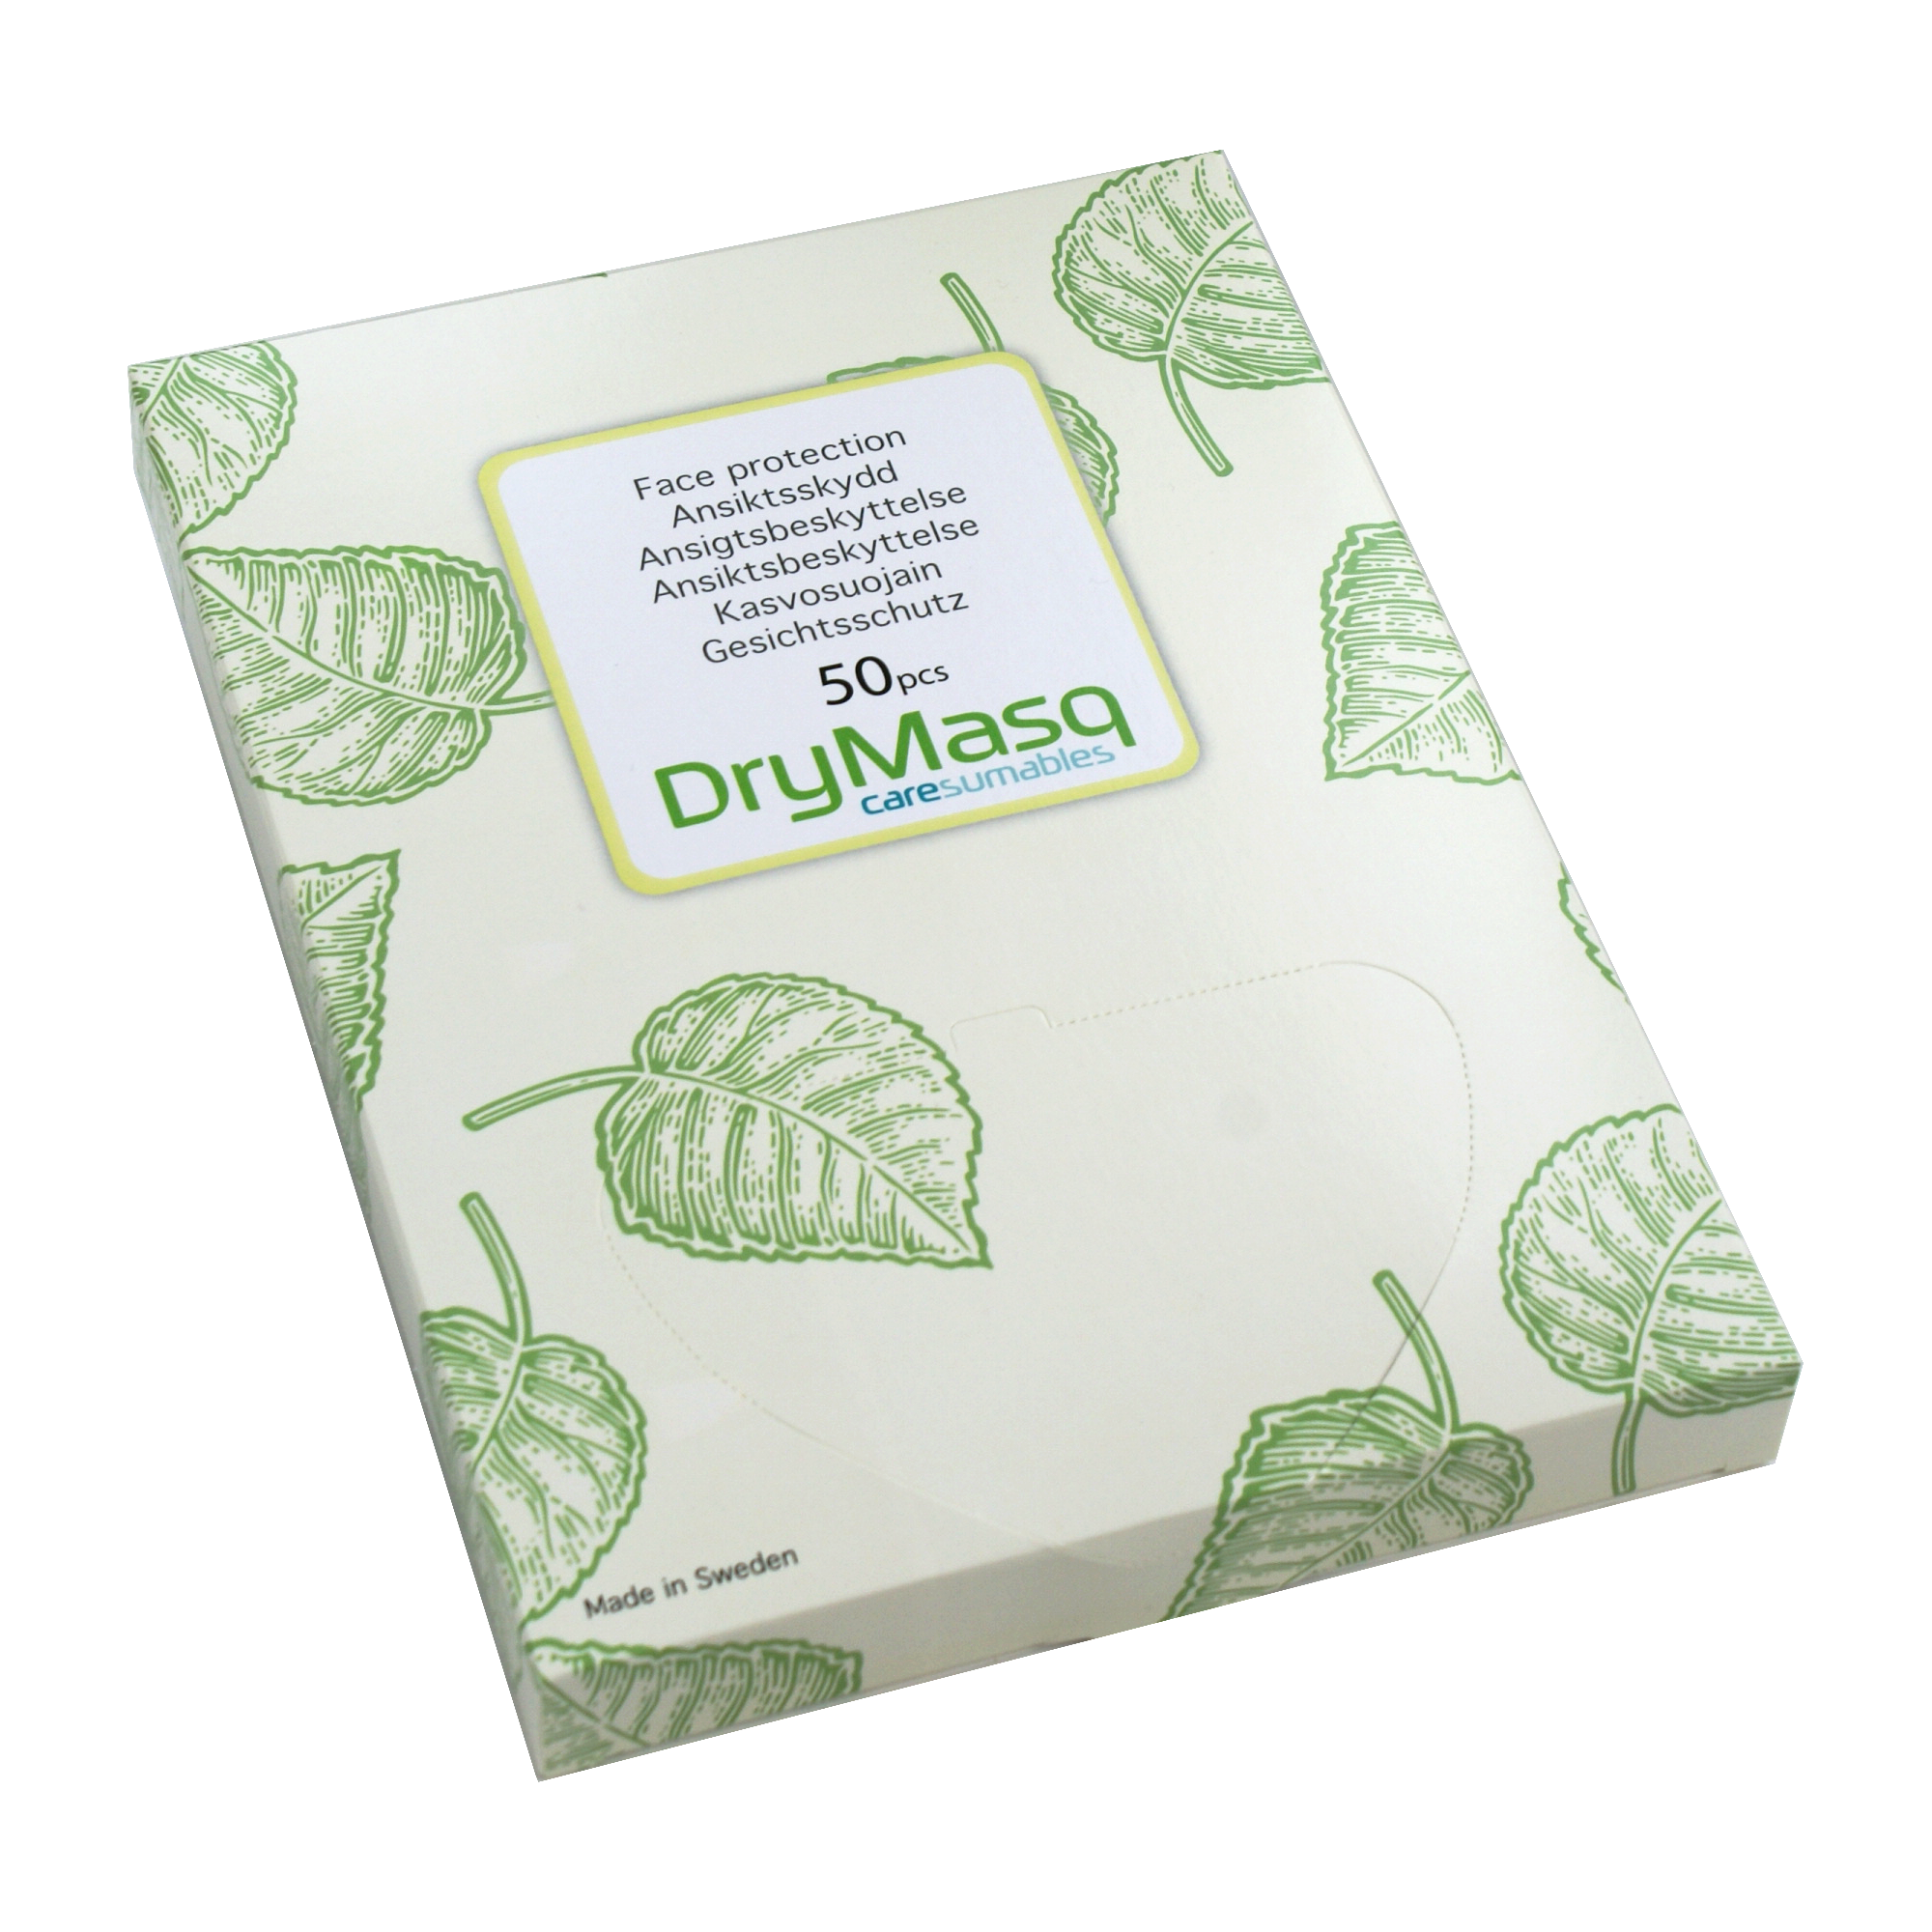 The DryMasq package looks like this when you receive it. To open, please tear off the perforated part on the top.